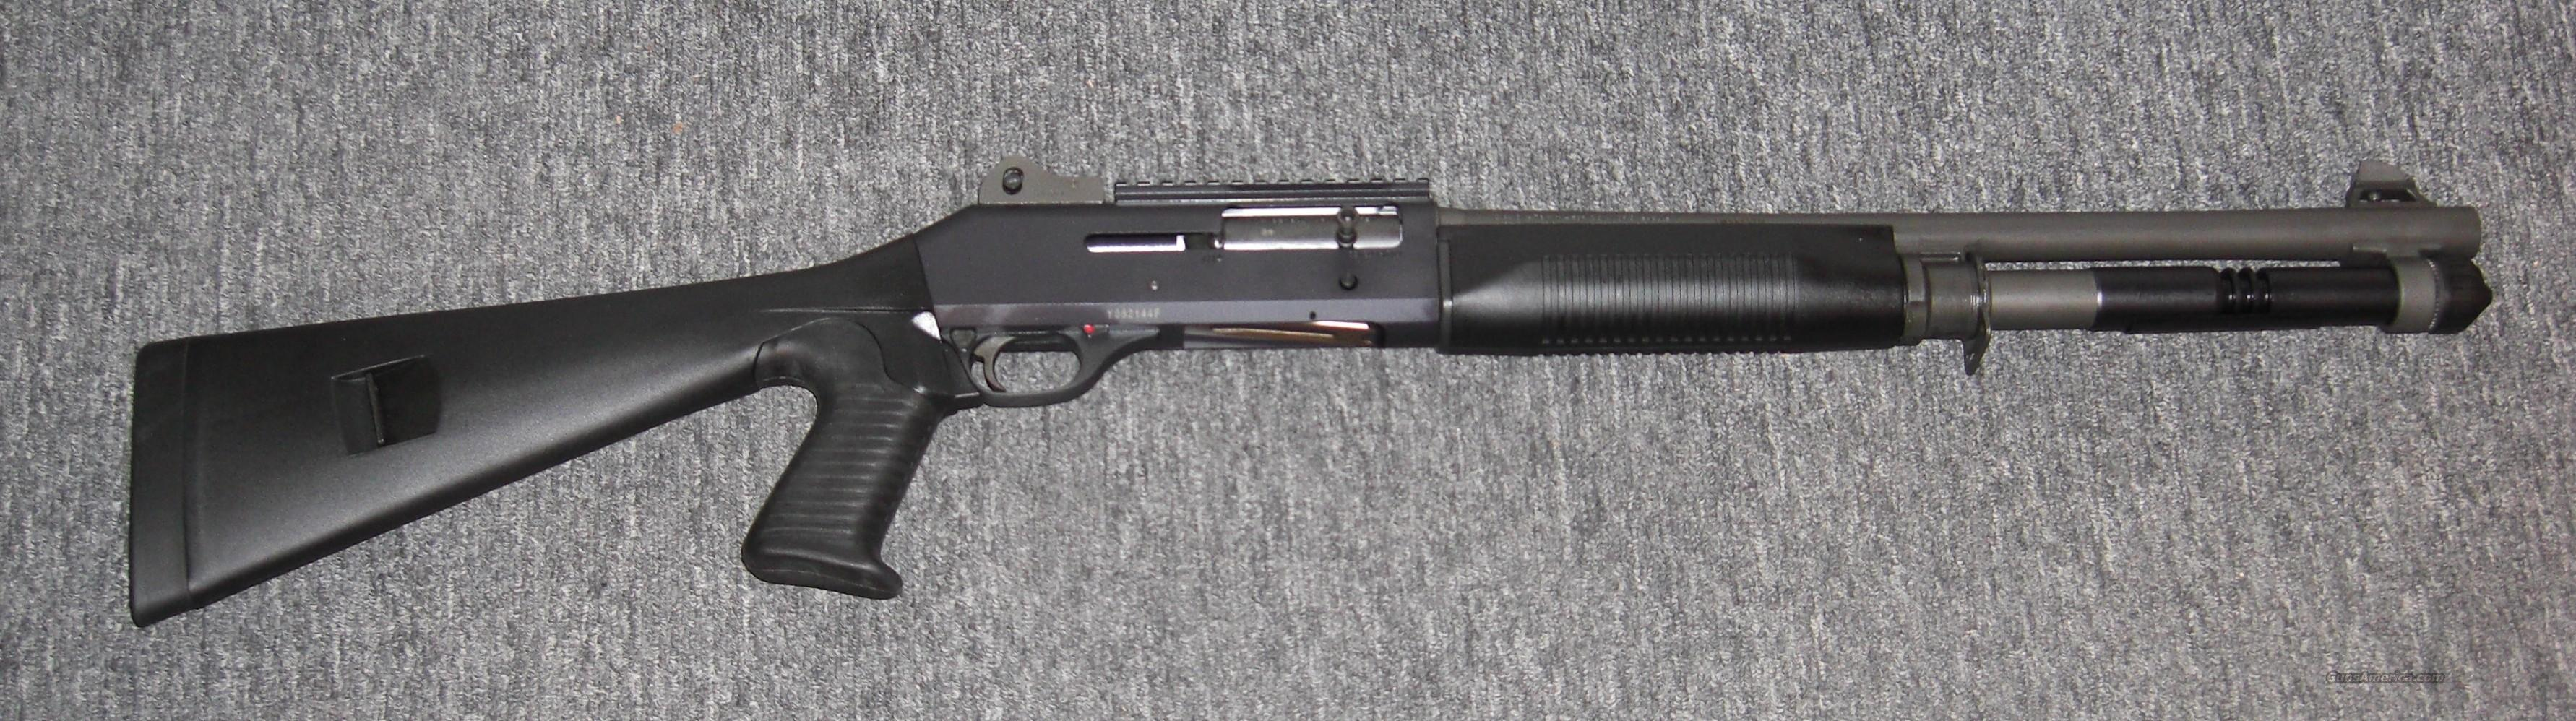 Benelli M4 all black, model #11707  SALE  Guns > Shotguns > Benelli Shotguns > Tactical